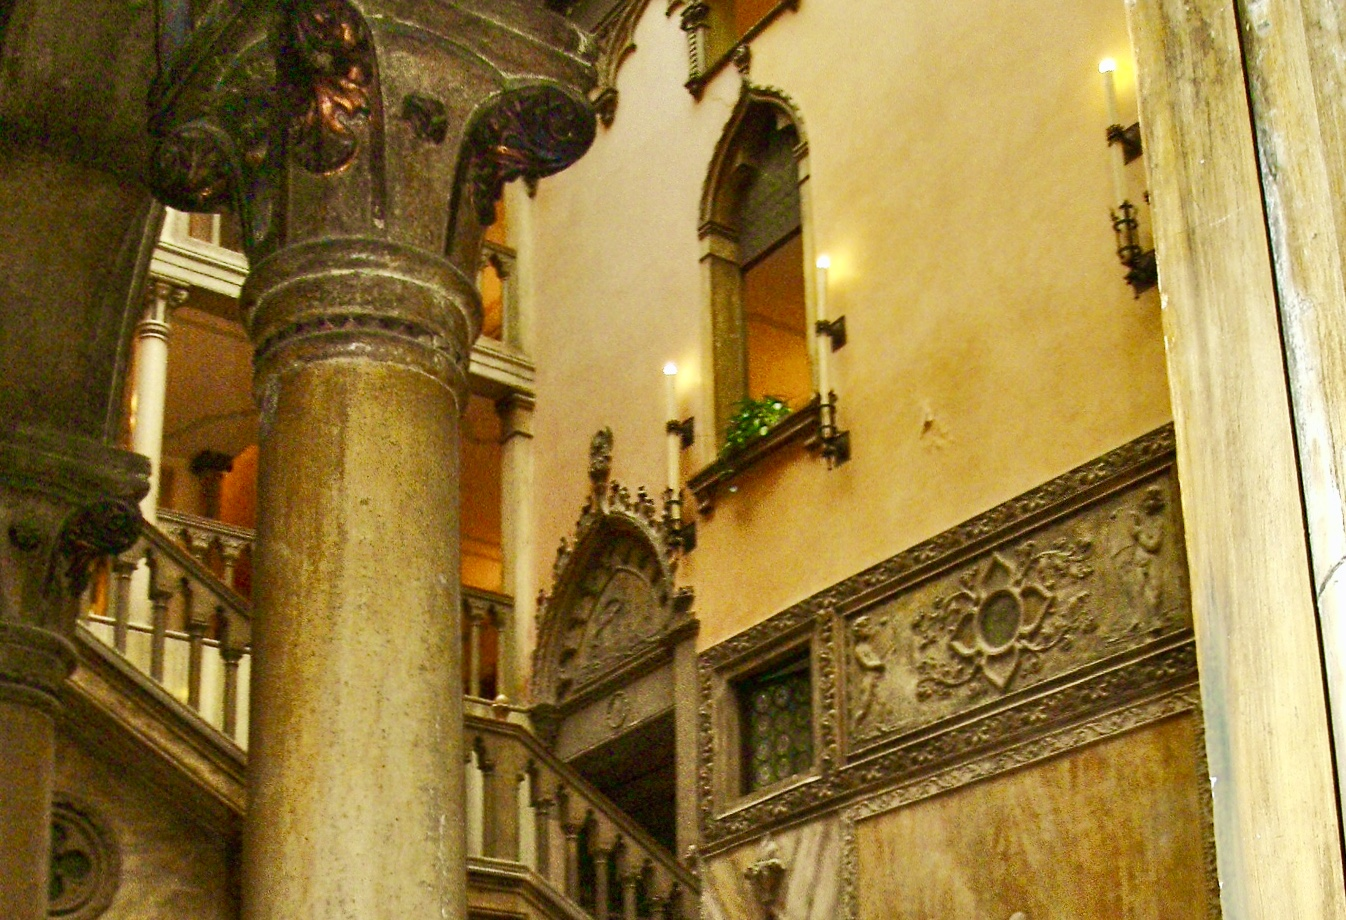 image of lobby at the Danieli Hotel in Venice